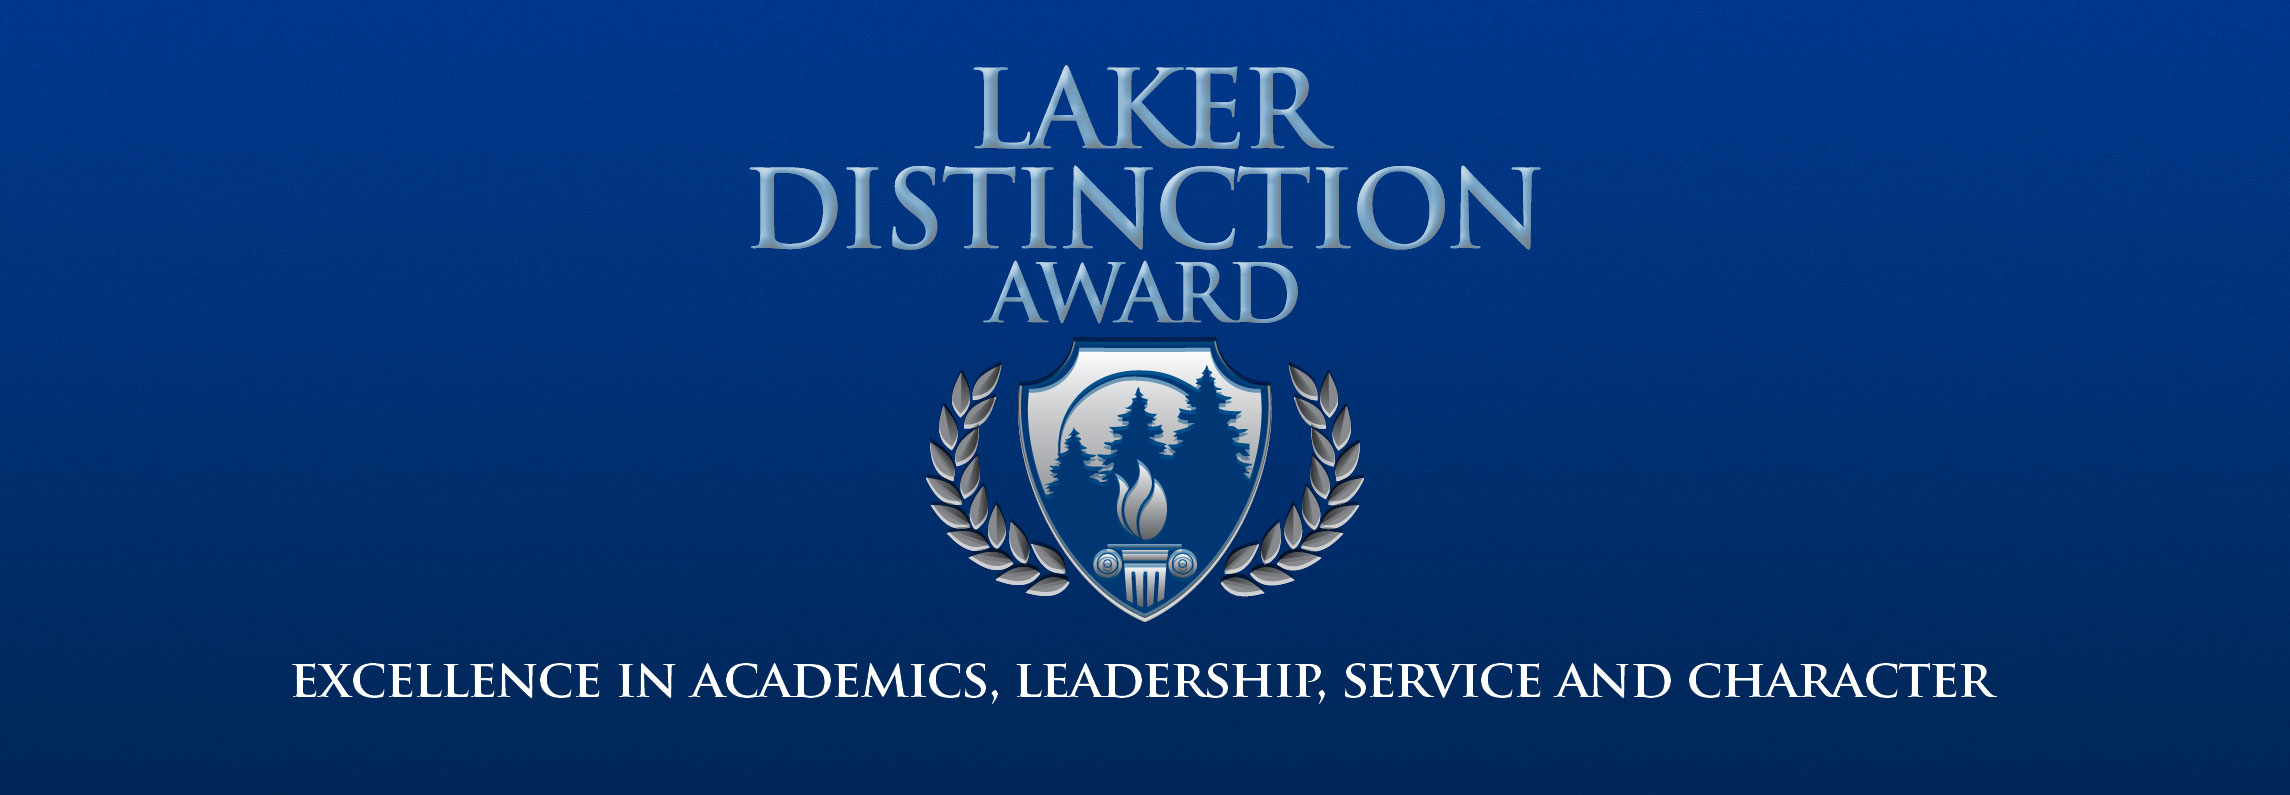 Laker Distinction Award - Excellence in Academics, Leadership, Service and Character